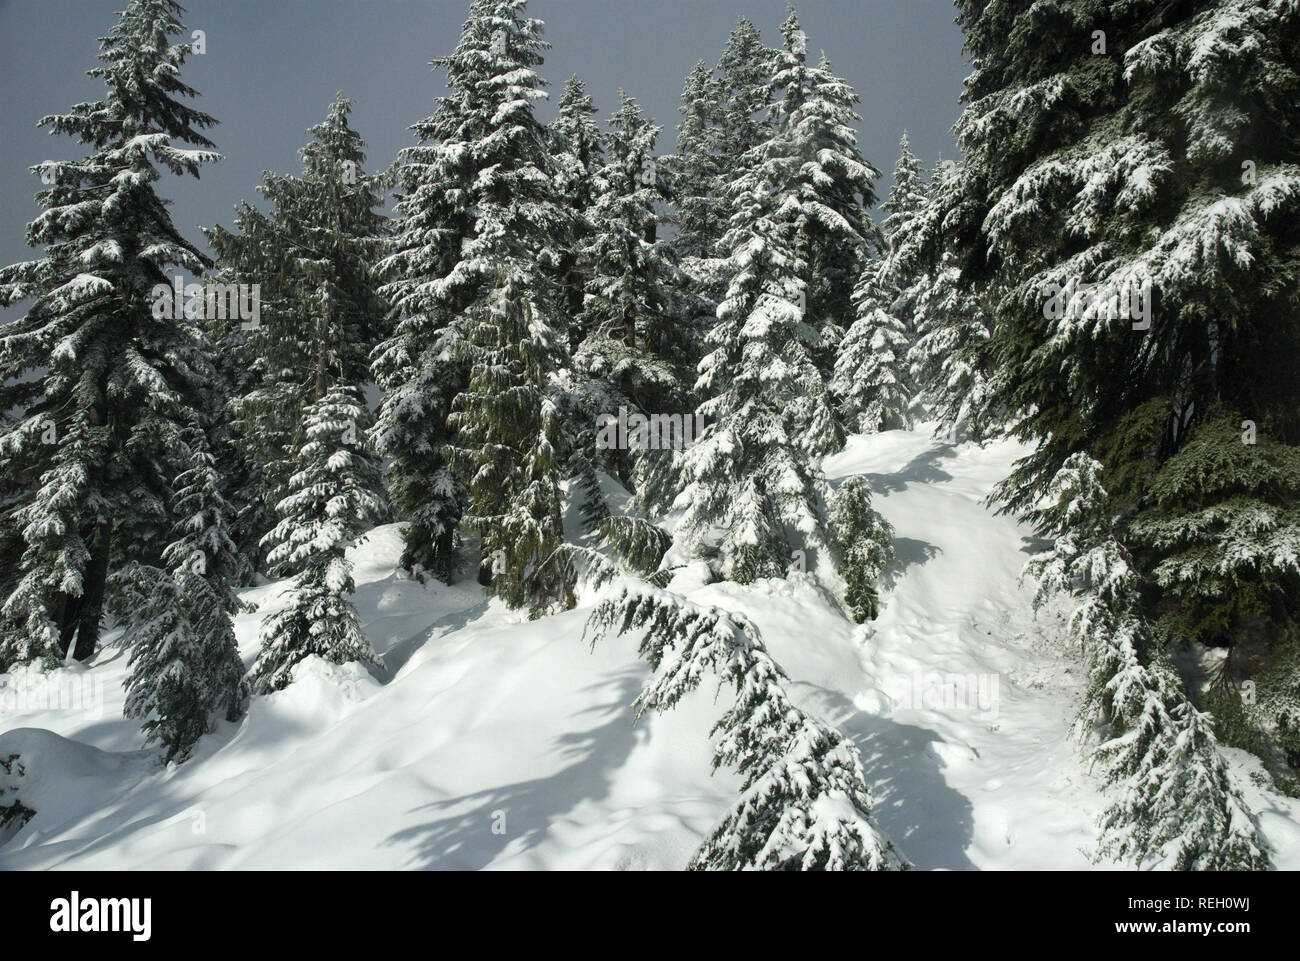 Deep snow in the forest, Mission, British Columbia, Canada - Stock Image